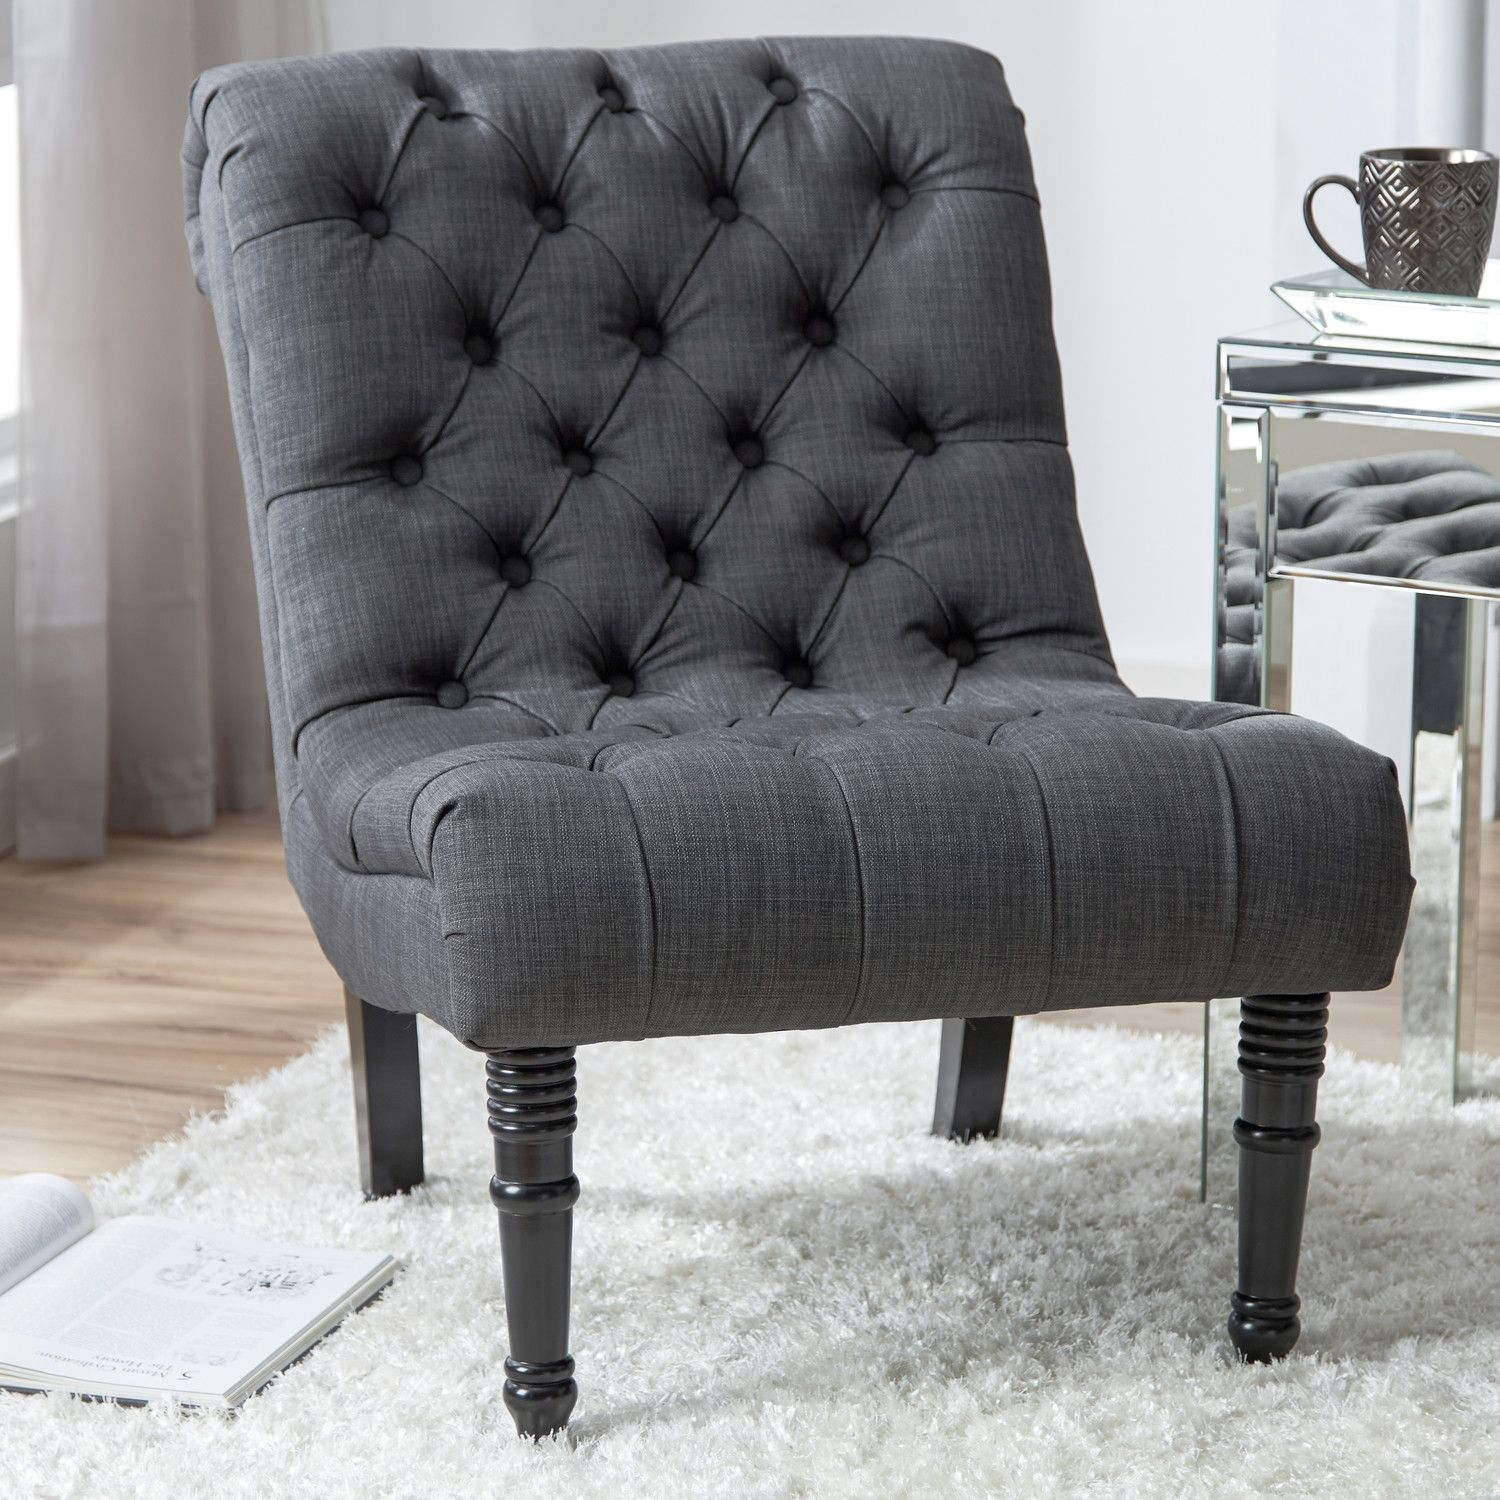 Using Accent Chairs Under 100 For Comfy Home Furniture Ideas Endearing Living Room Chairs Under 100 Design Decoration